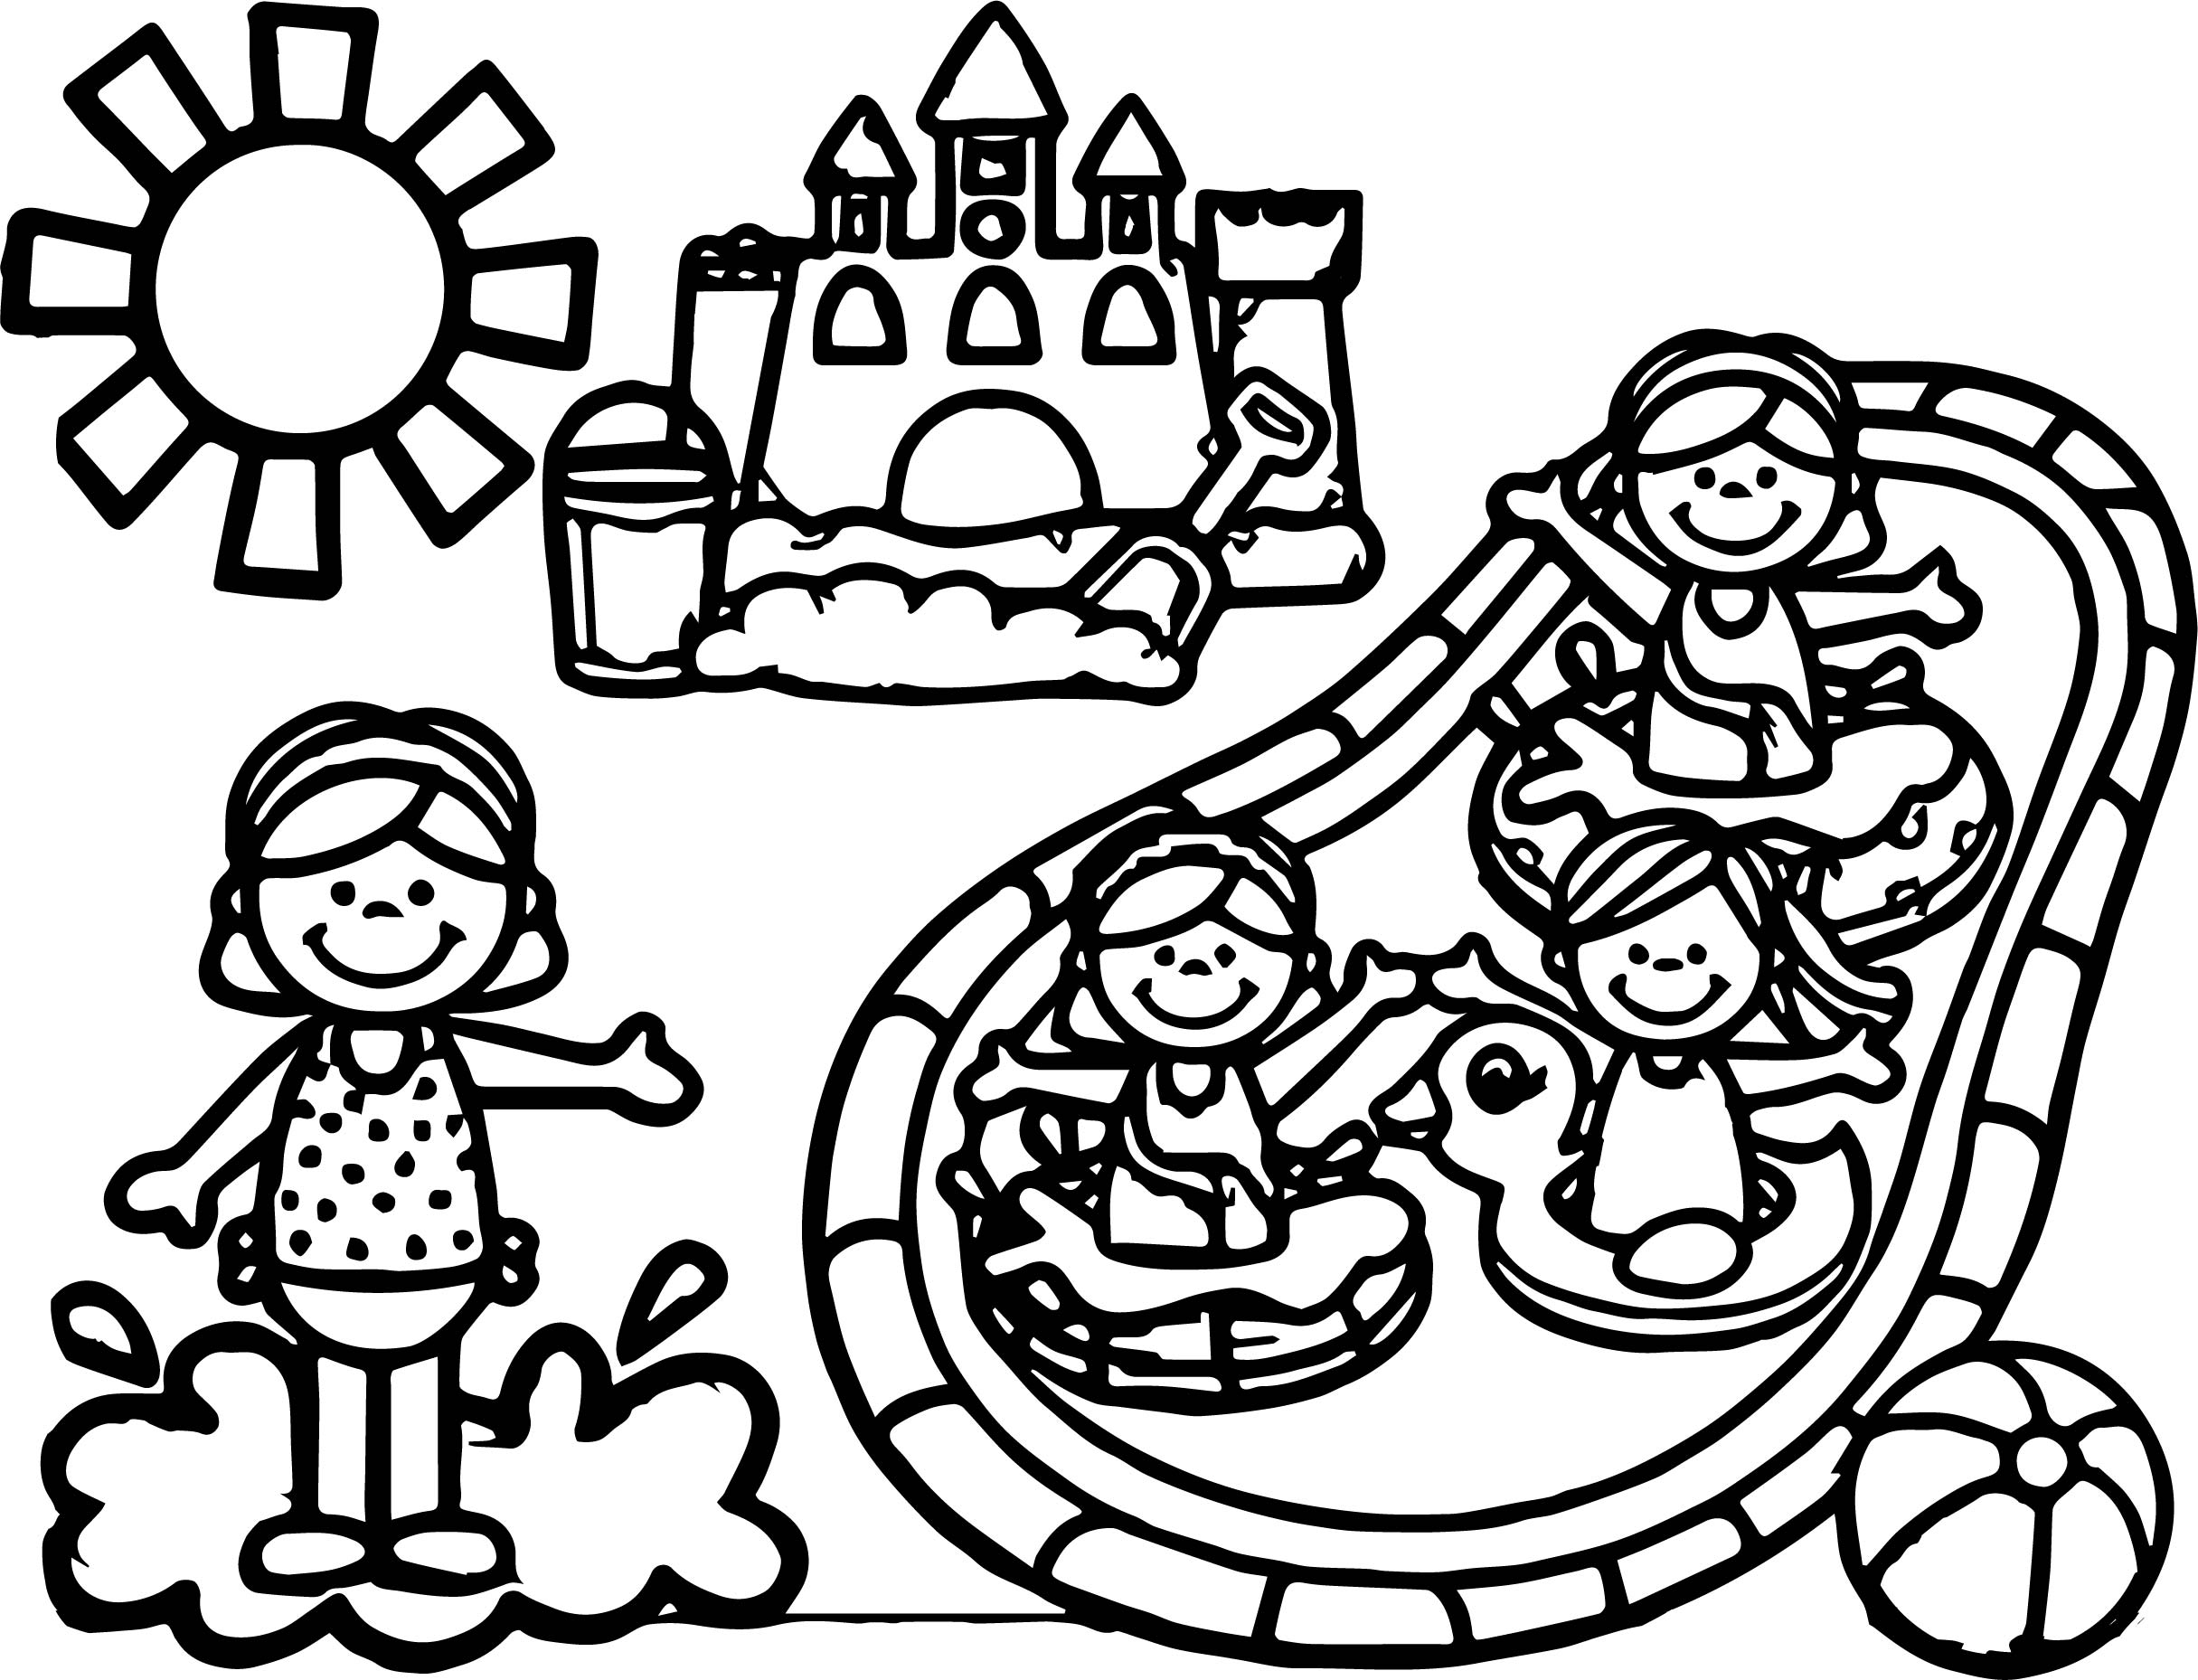 Summer Games Coloring Page   Wecoloringpage